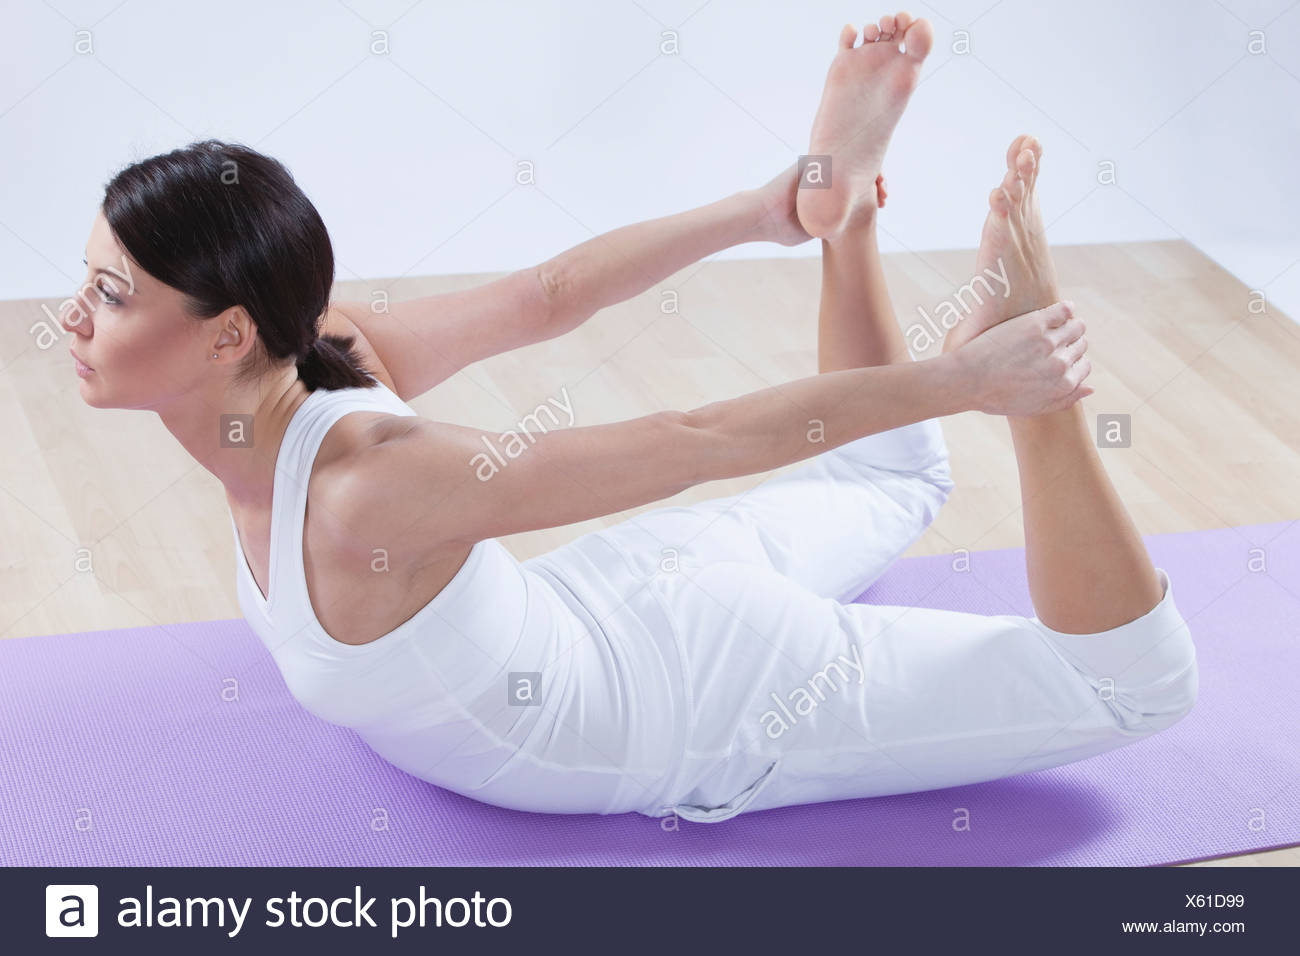 Mid adult woman doing bow pose against white background - Stock Image